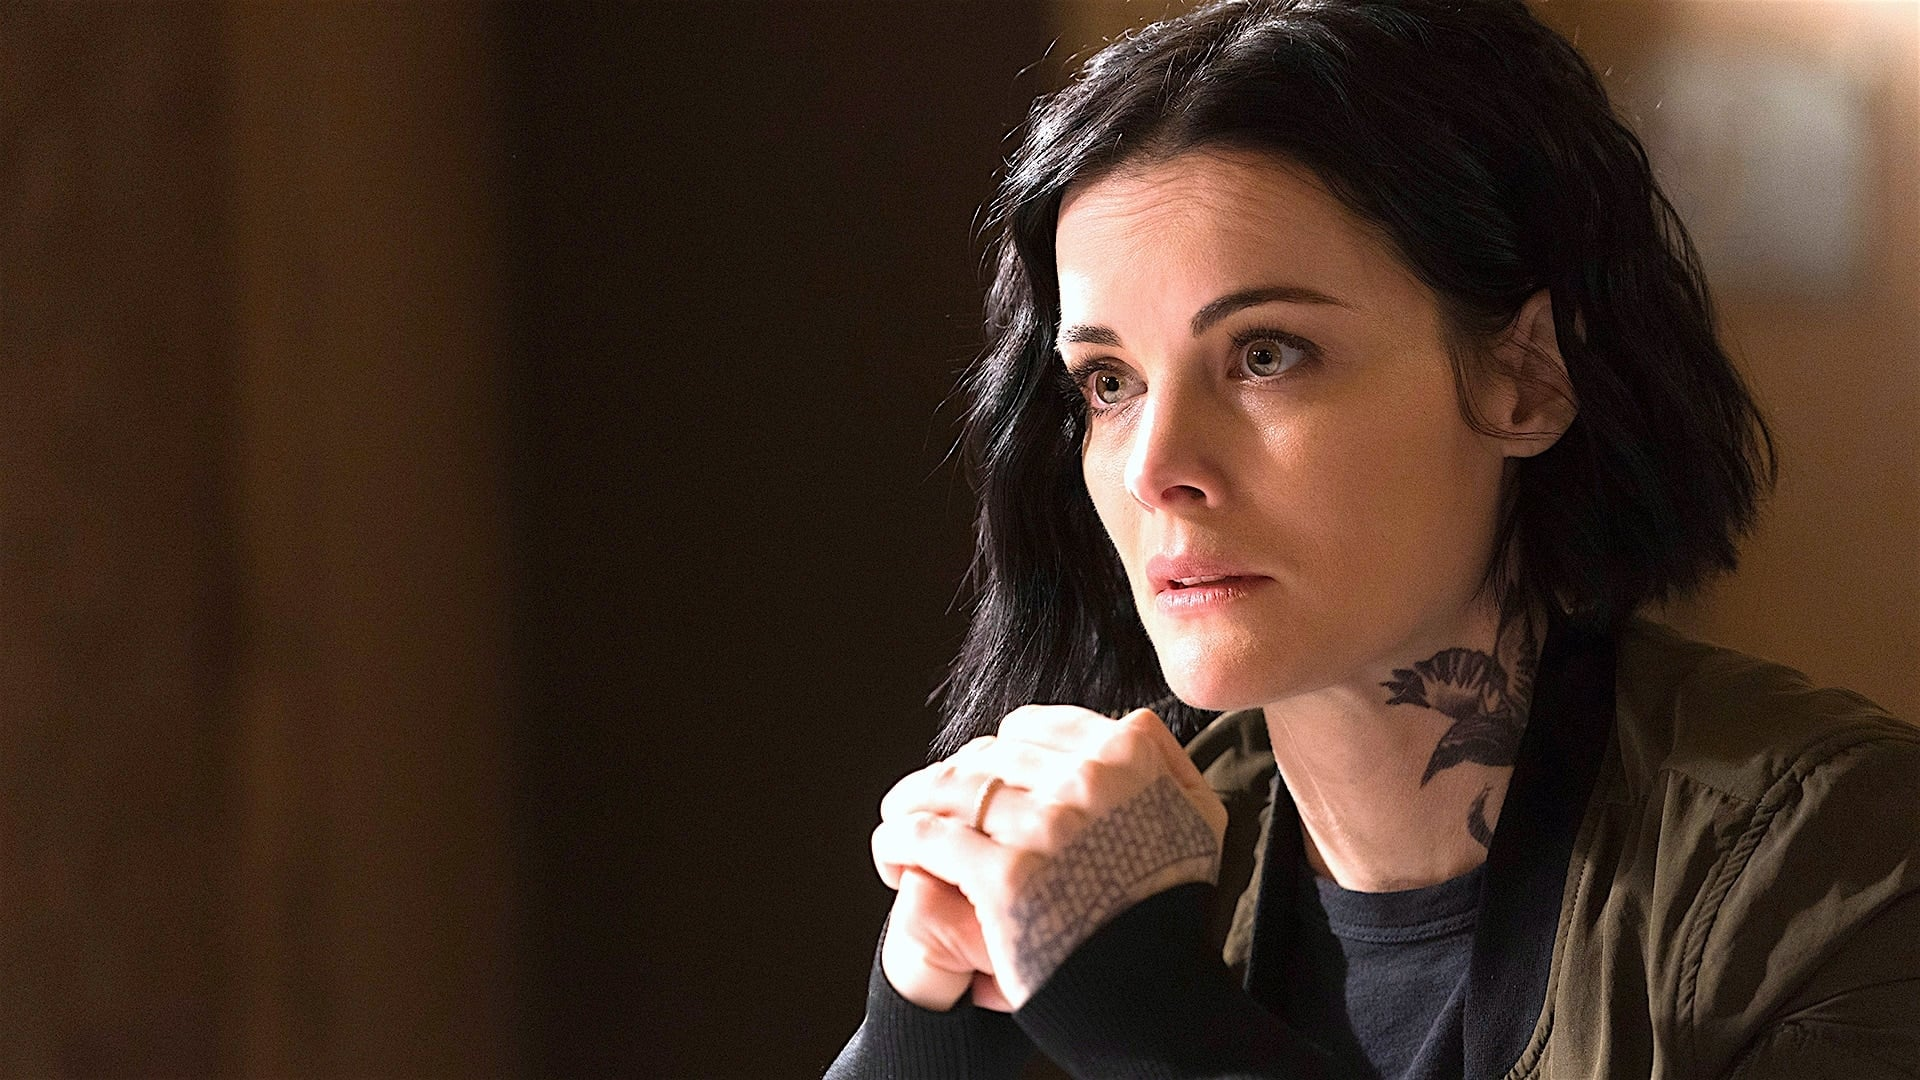 Blindspot - Season 4 Episode 16 : The One Where Jane Visits an Old Friend